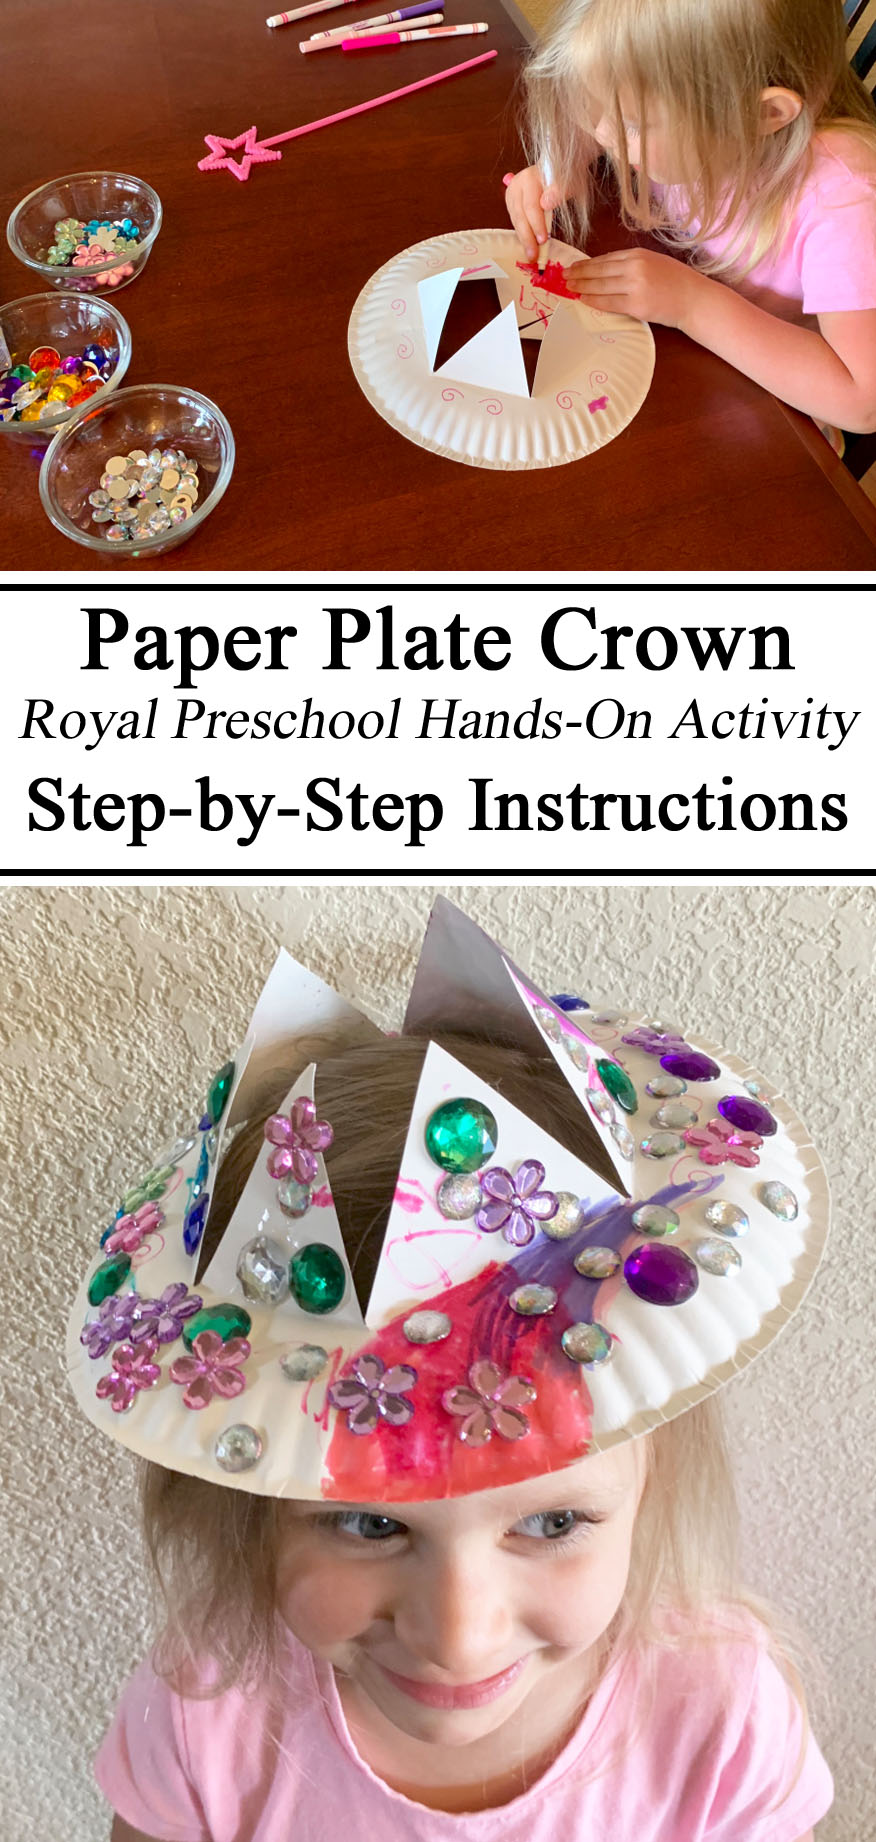 England Unit Study, Royal Family, Crown Jewels, Paper Plate Craft, Gems, Hands on Learning, Preschool Arts and Crafts, Get Creative with, Princess, Prince, Unschooling, Ideas, Preschool Inspiration, STEAM Education, STEM Challenge, Parents, Mothers, Teachers, Ideas, Montessori, Waldorf